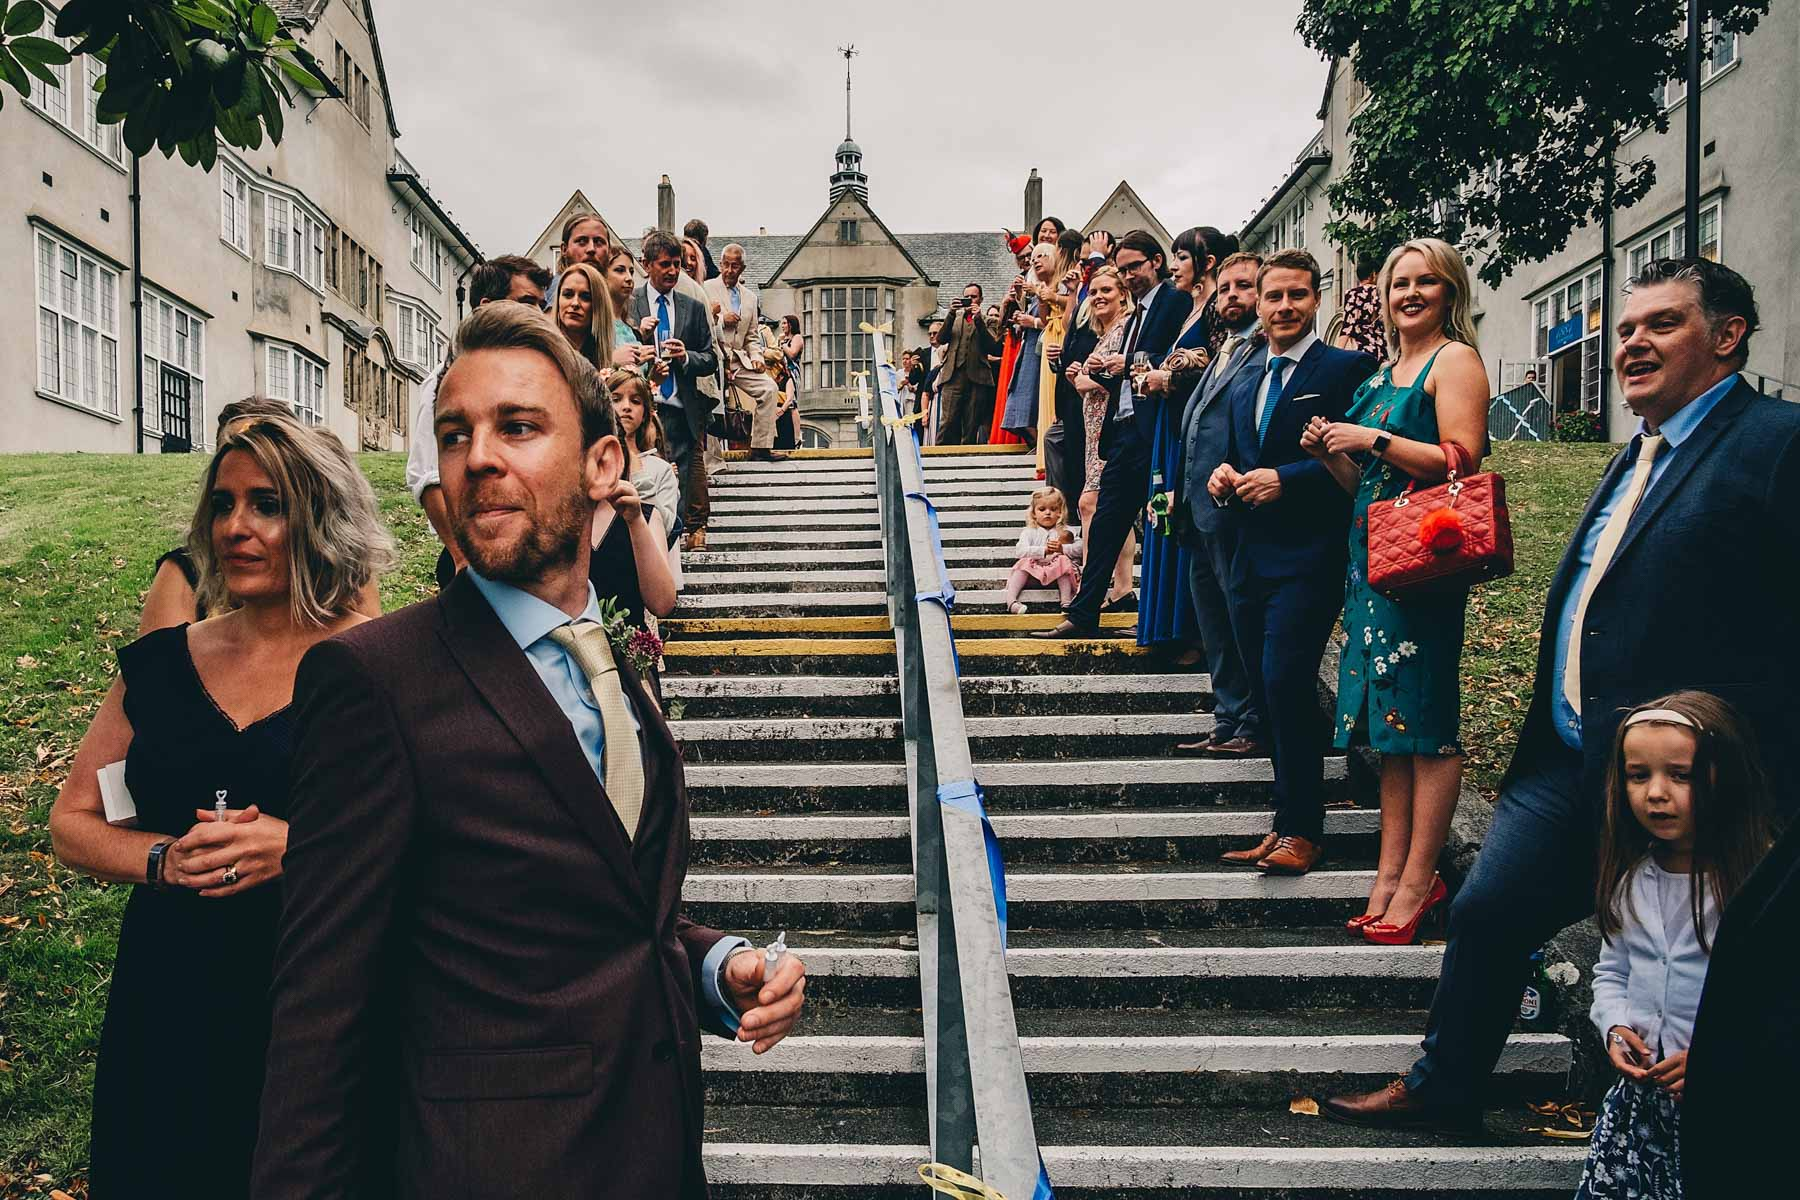 Guests wait on steps to congratulate bride and groom